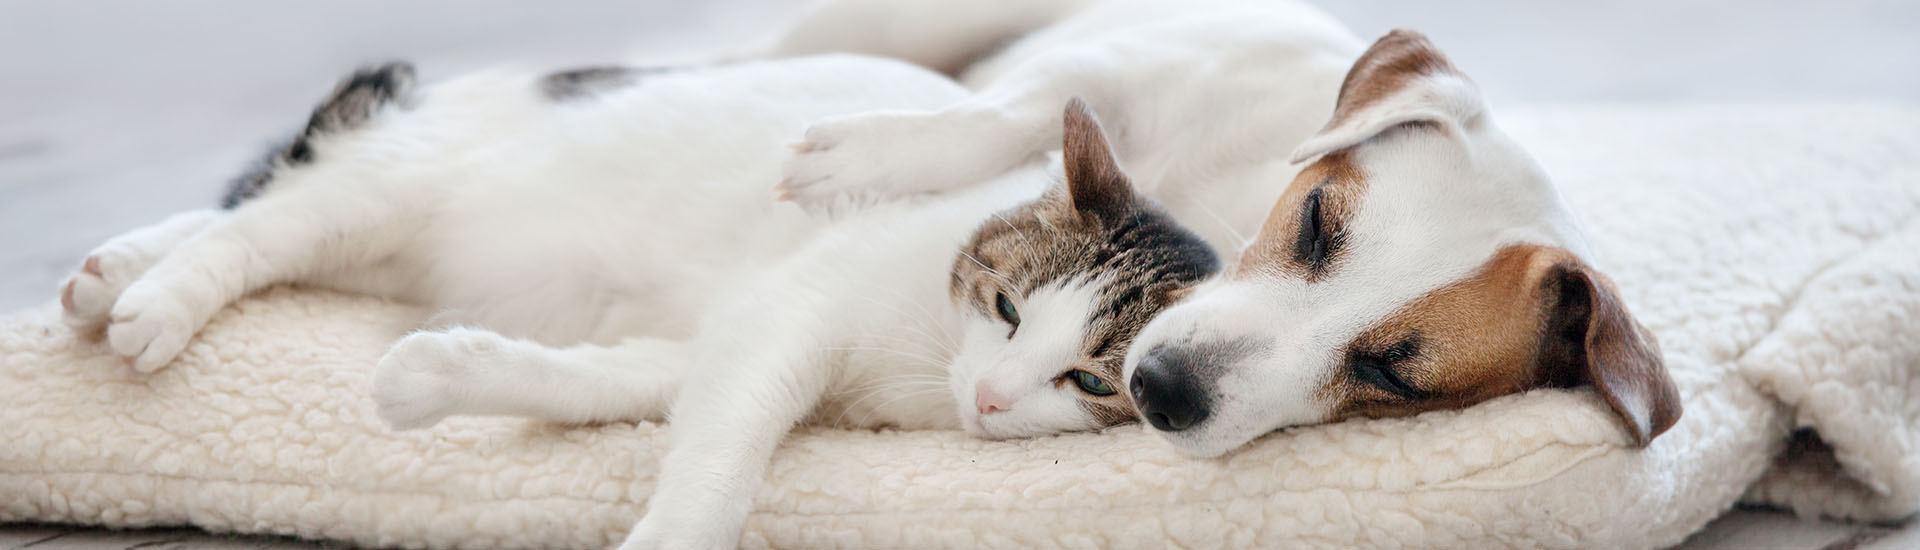 JRT and Cat sleeping on bed-small